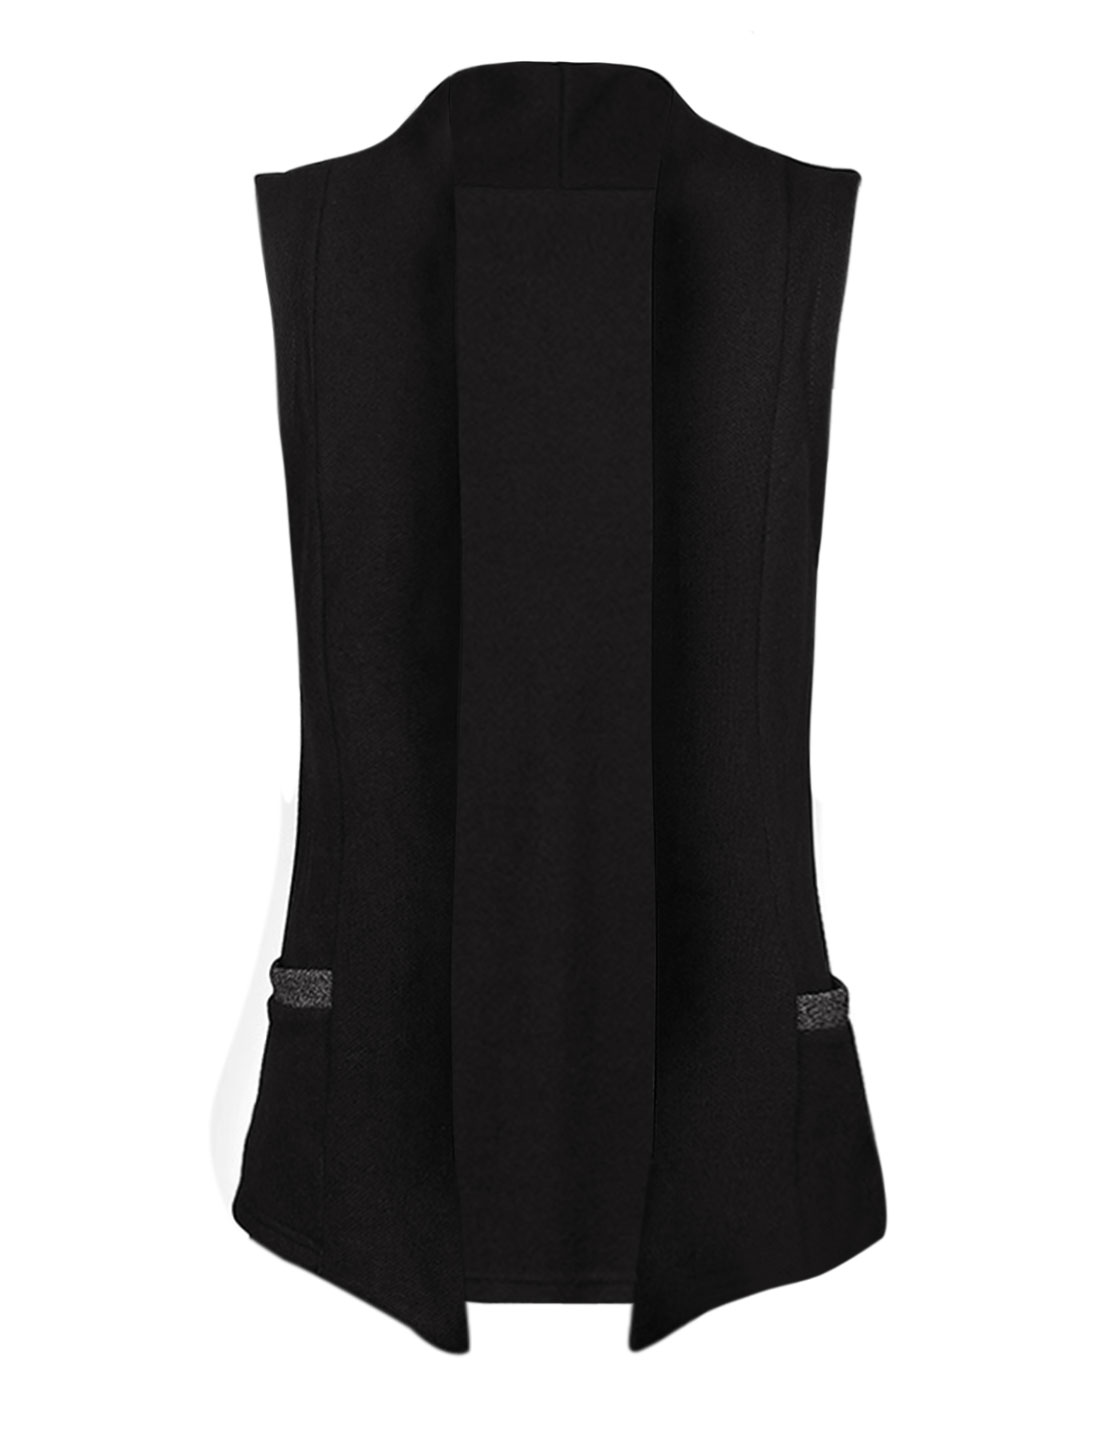 Men Open Front Two Straight Pockets Sleeveless Vest Outerwear Black S